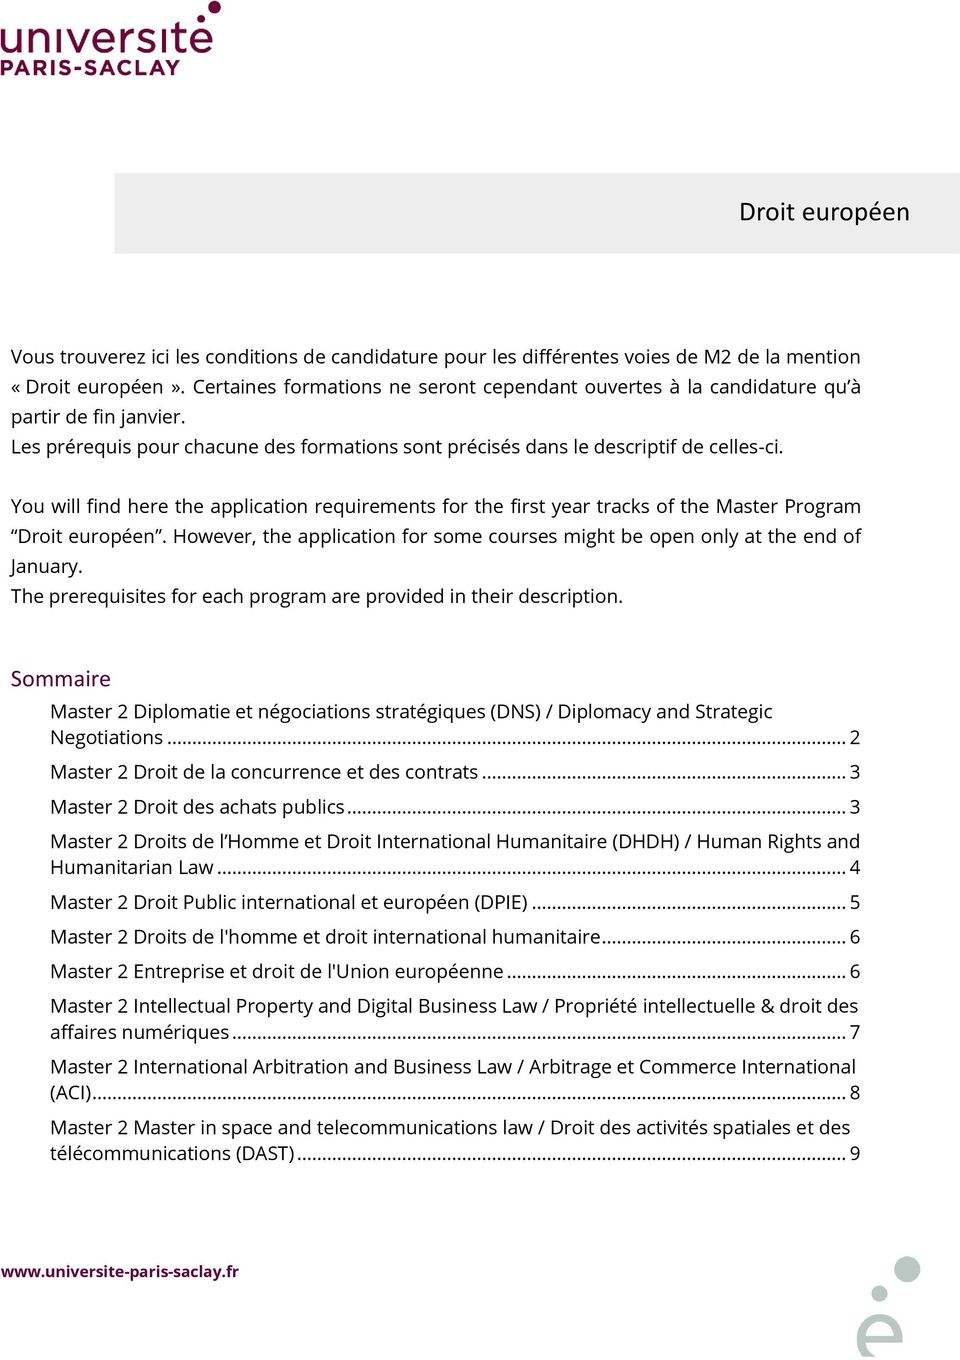 You will find here the application requirements for the first year tracks of the Master Program Droit européen. However, the application for some courses might be open only at the end of January.